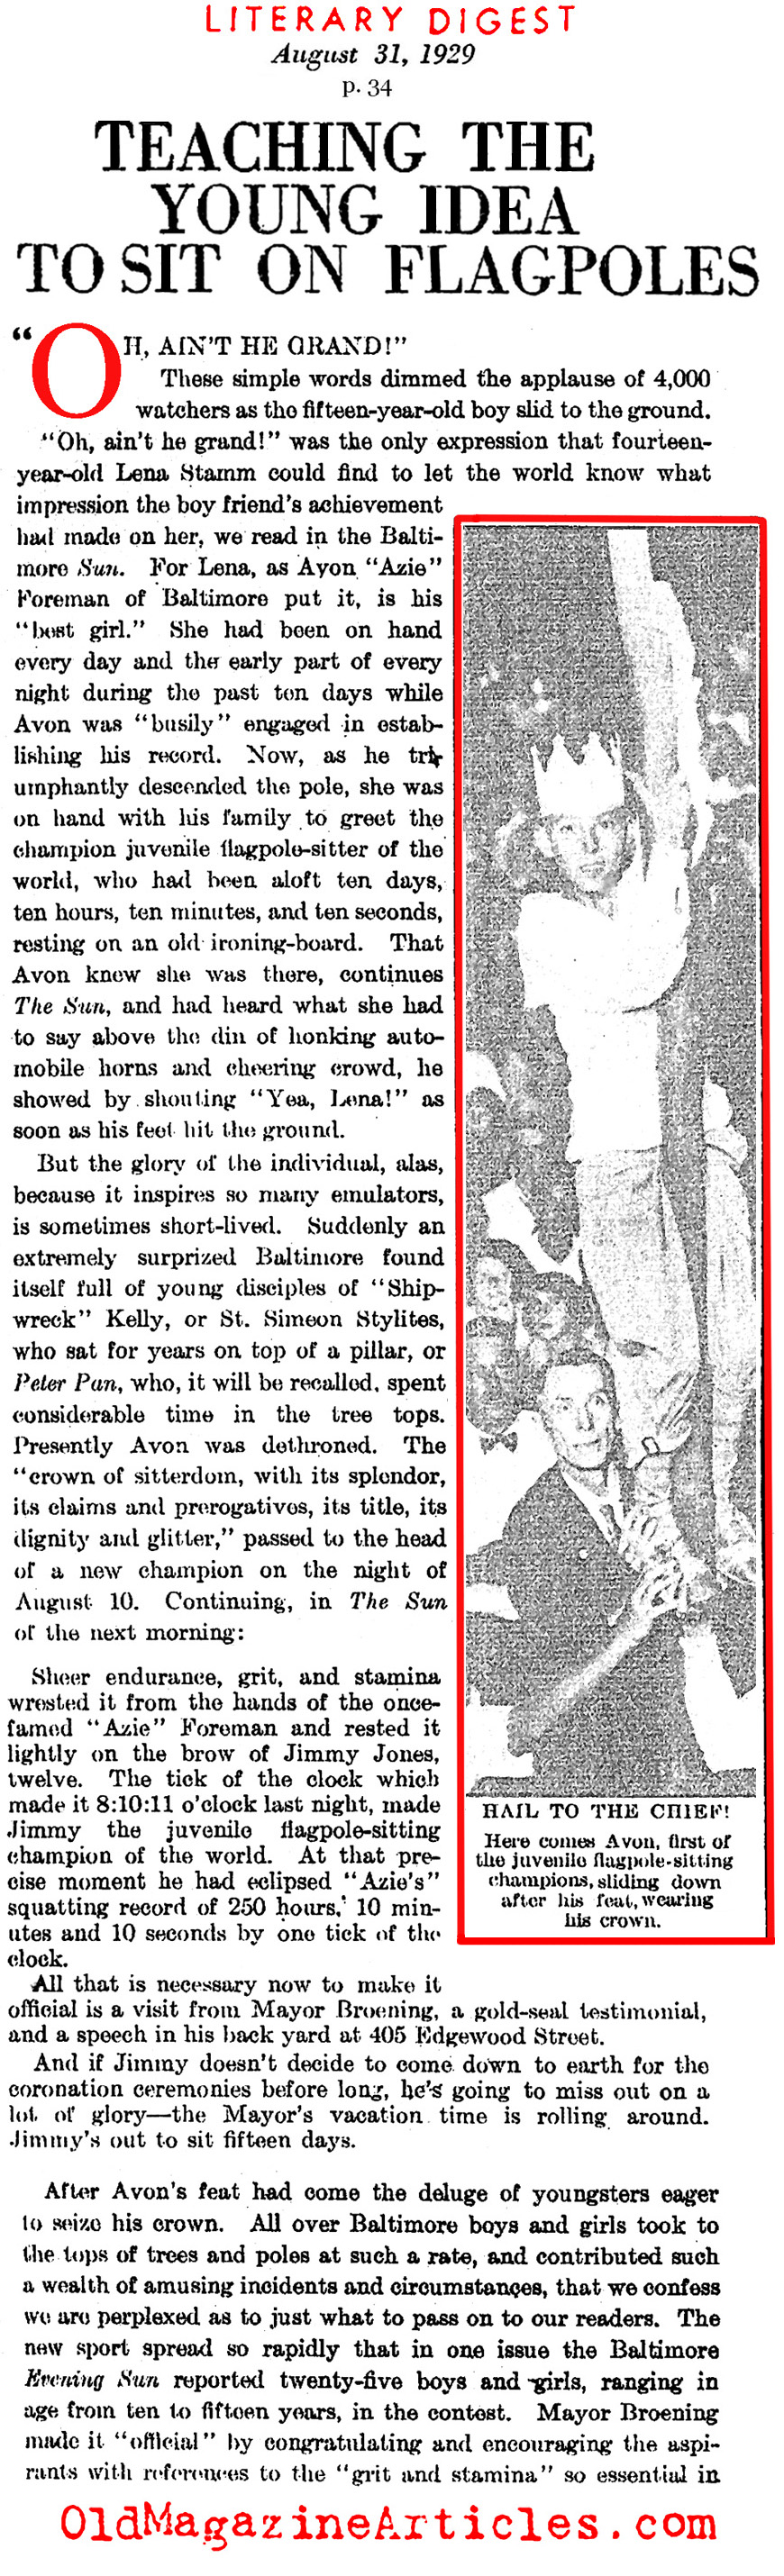 The 1920s Craze for Flagpole Sitting (Literary Digest, 1929)